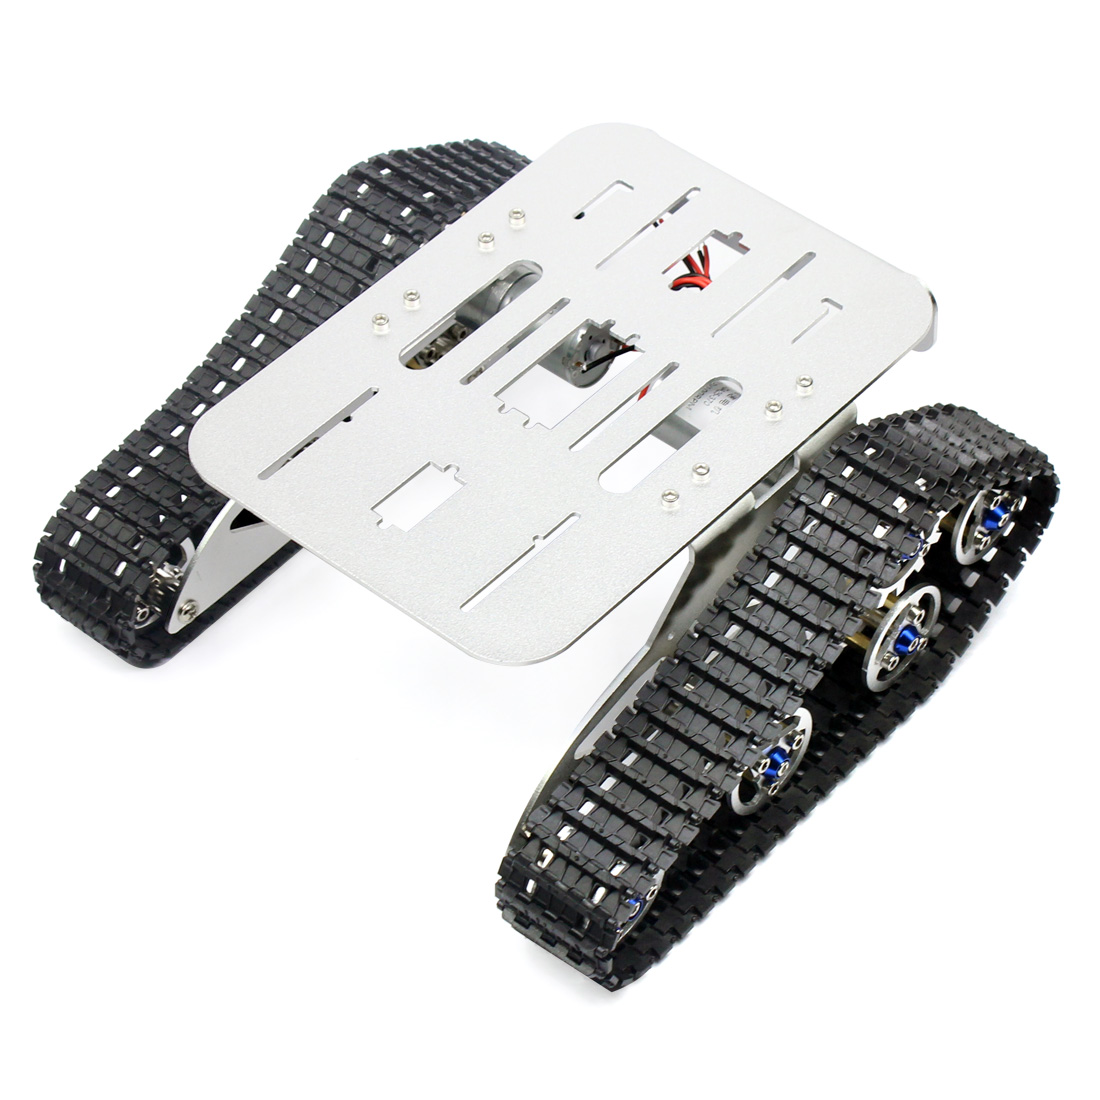 4WD Metal Tank Intelligent Crawler Robotic Chassis for RC Robot Car 210x140x75mm